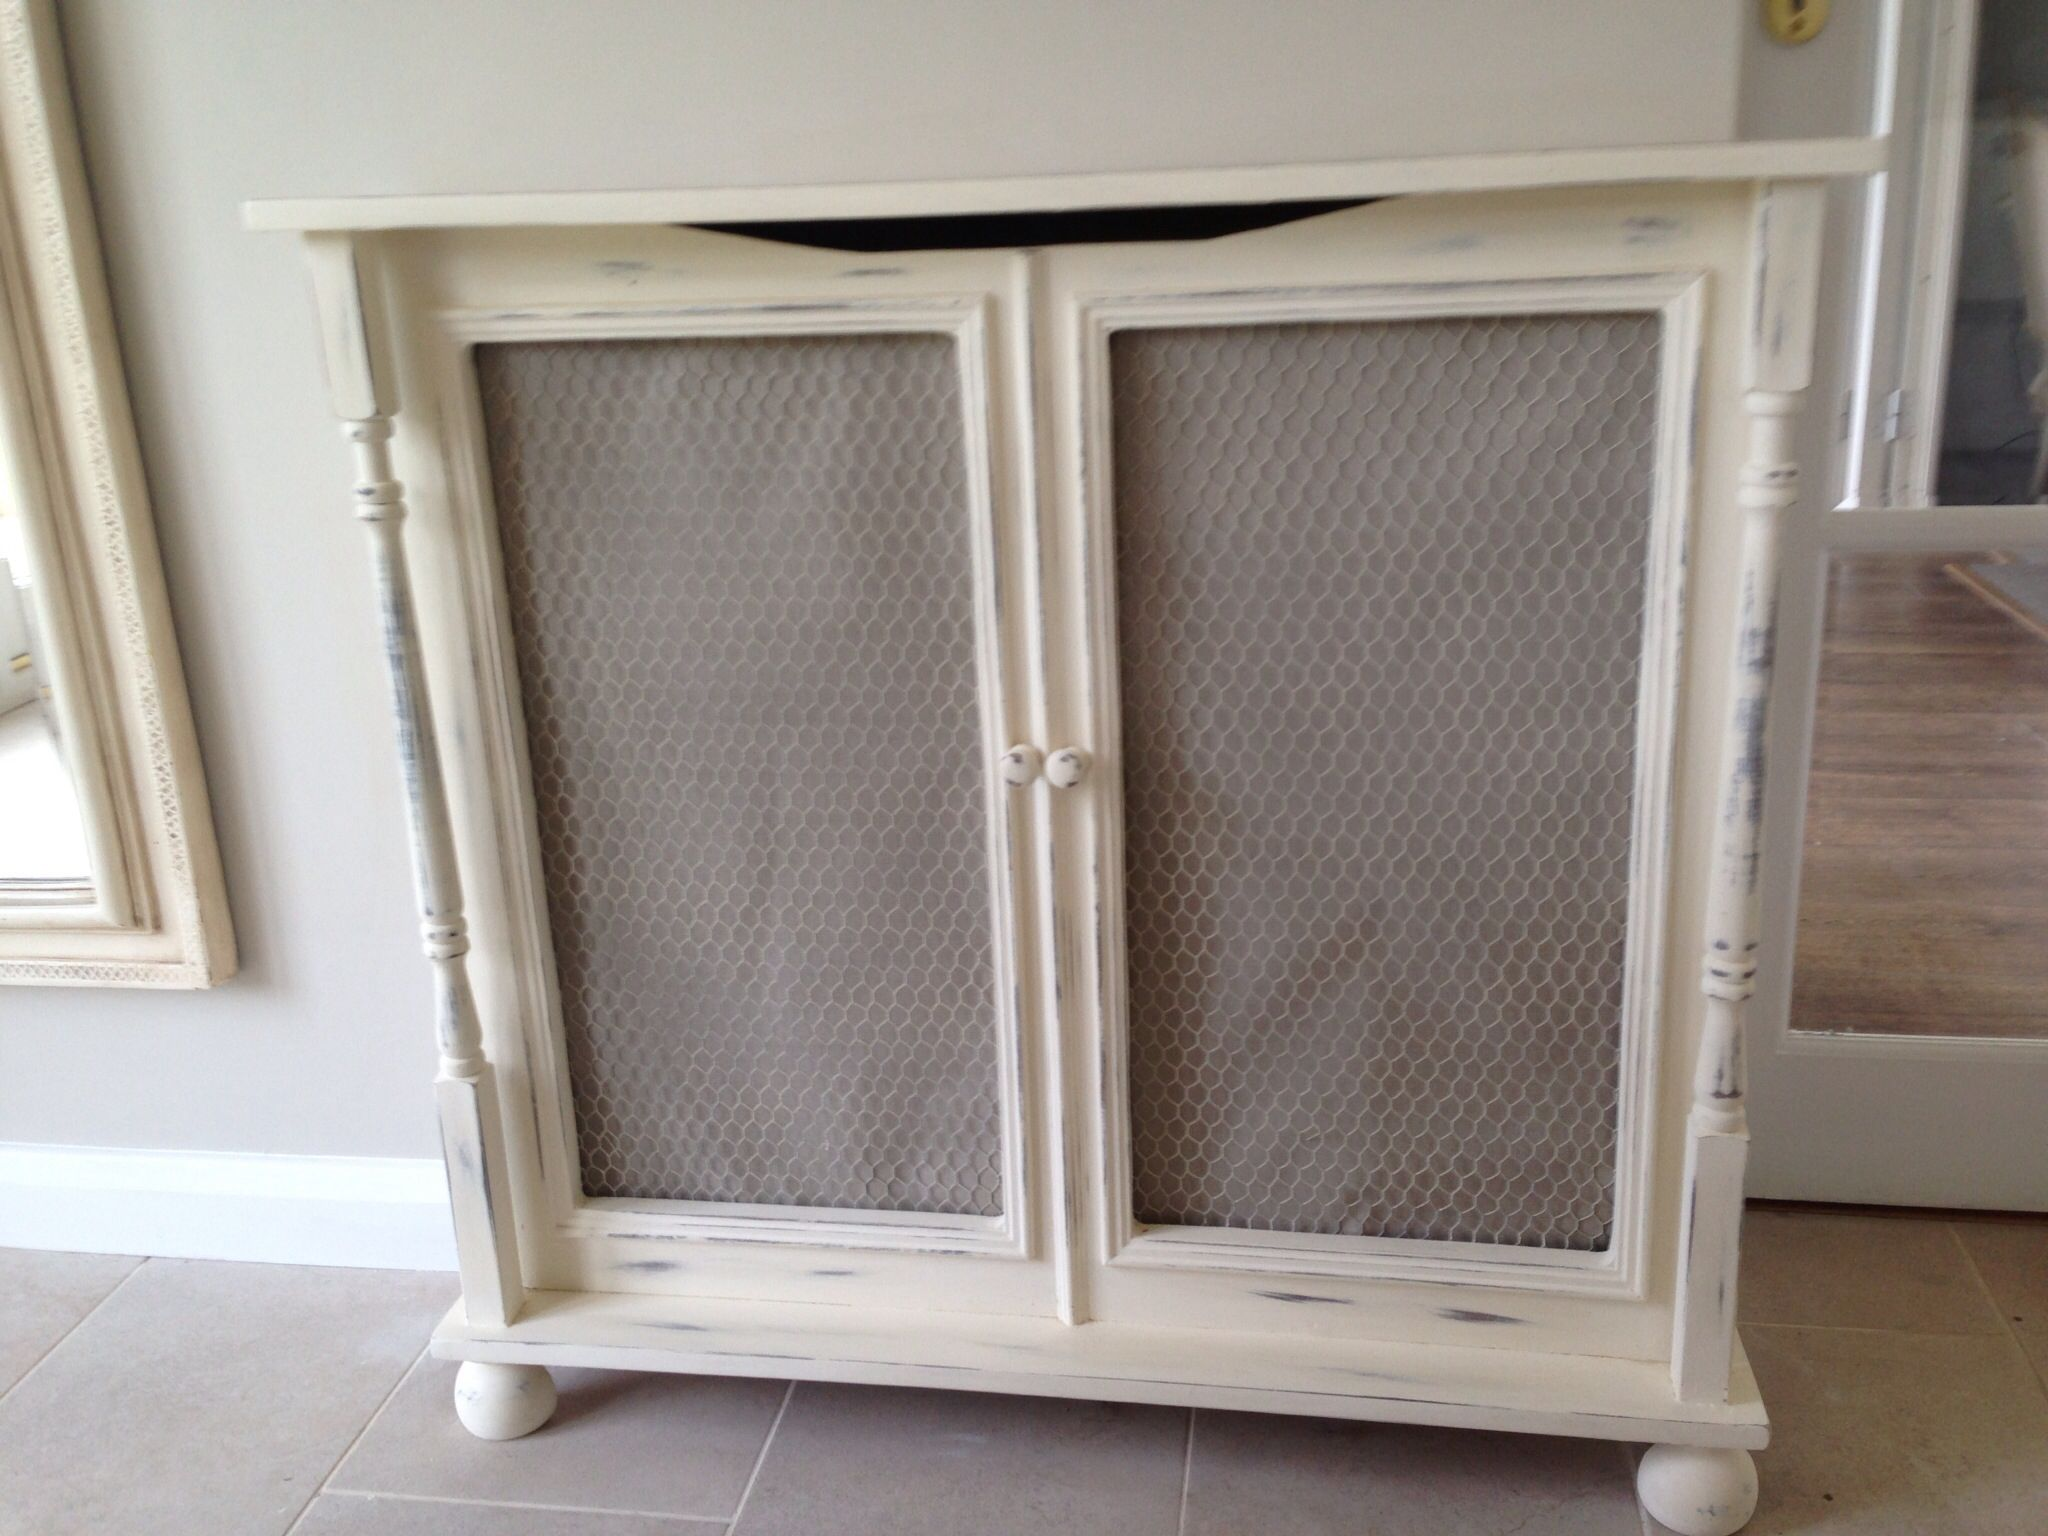 Like the Idea of repurposing a Cabinet - Remove Wood Insert and Replace  with Radiator Screen